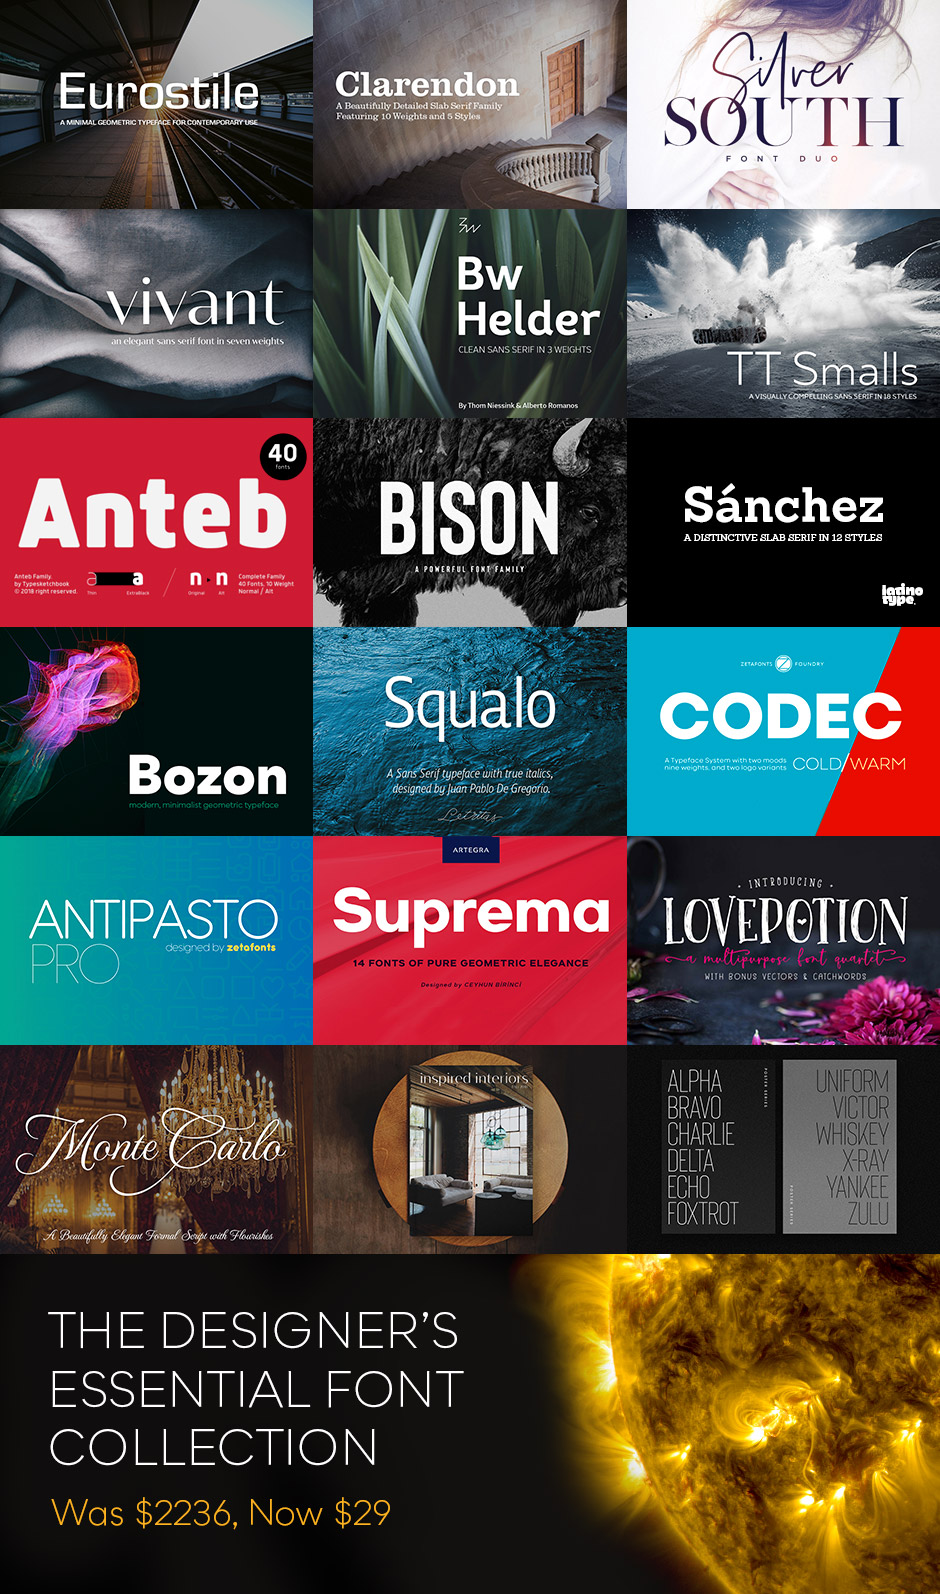 The Designers Essential Font Collection Grid Image